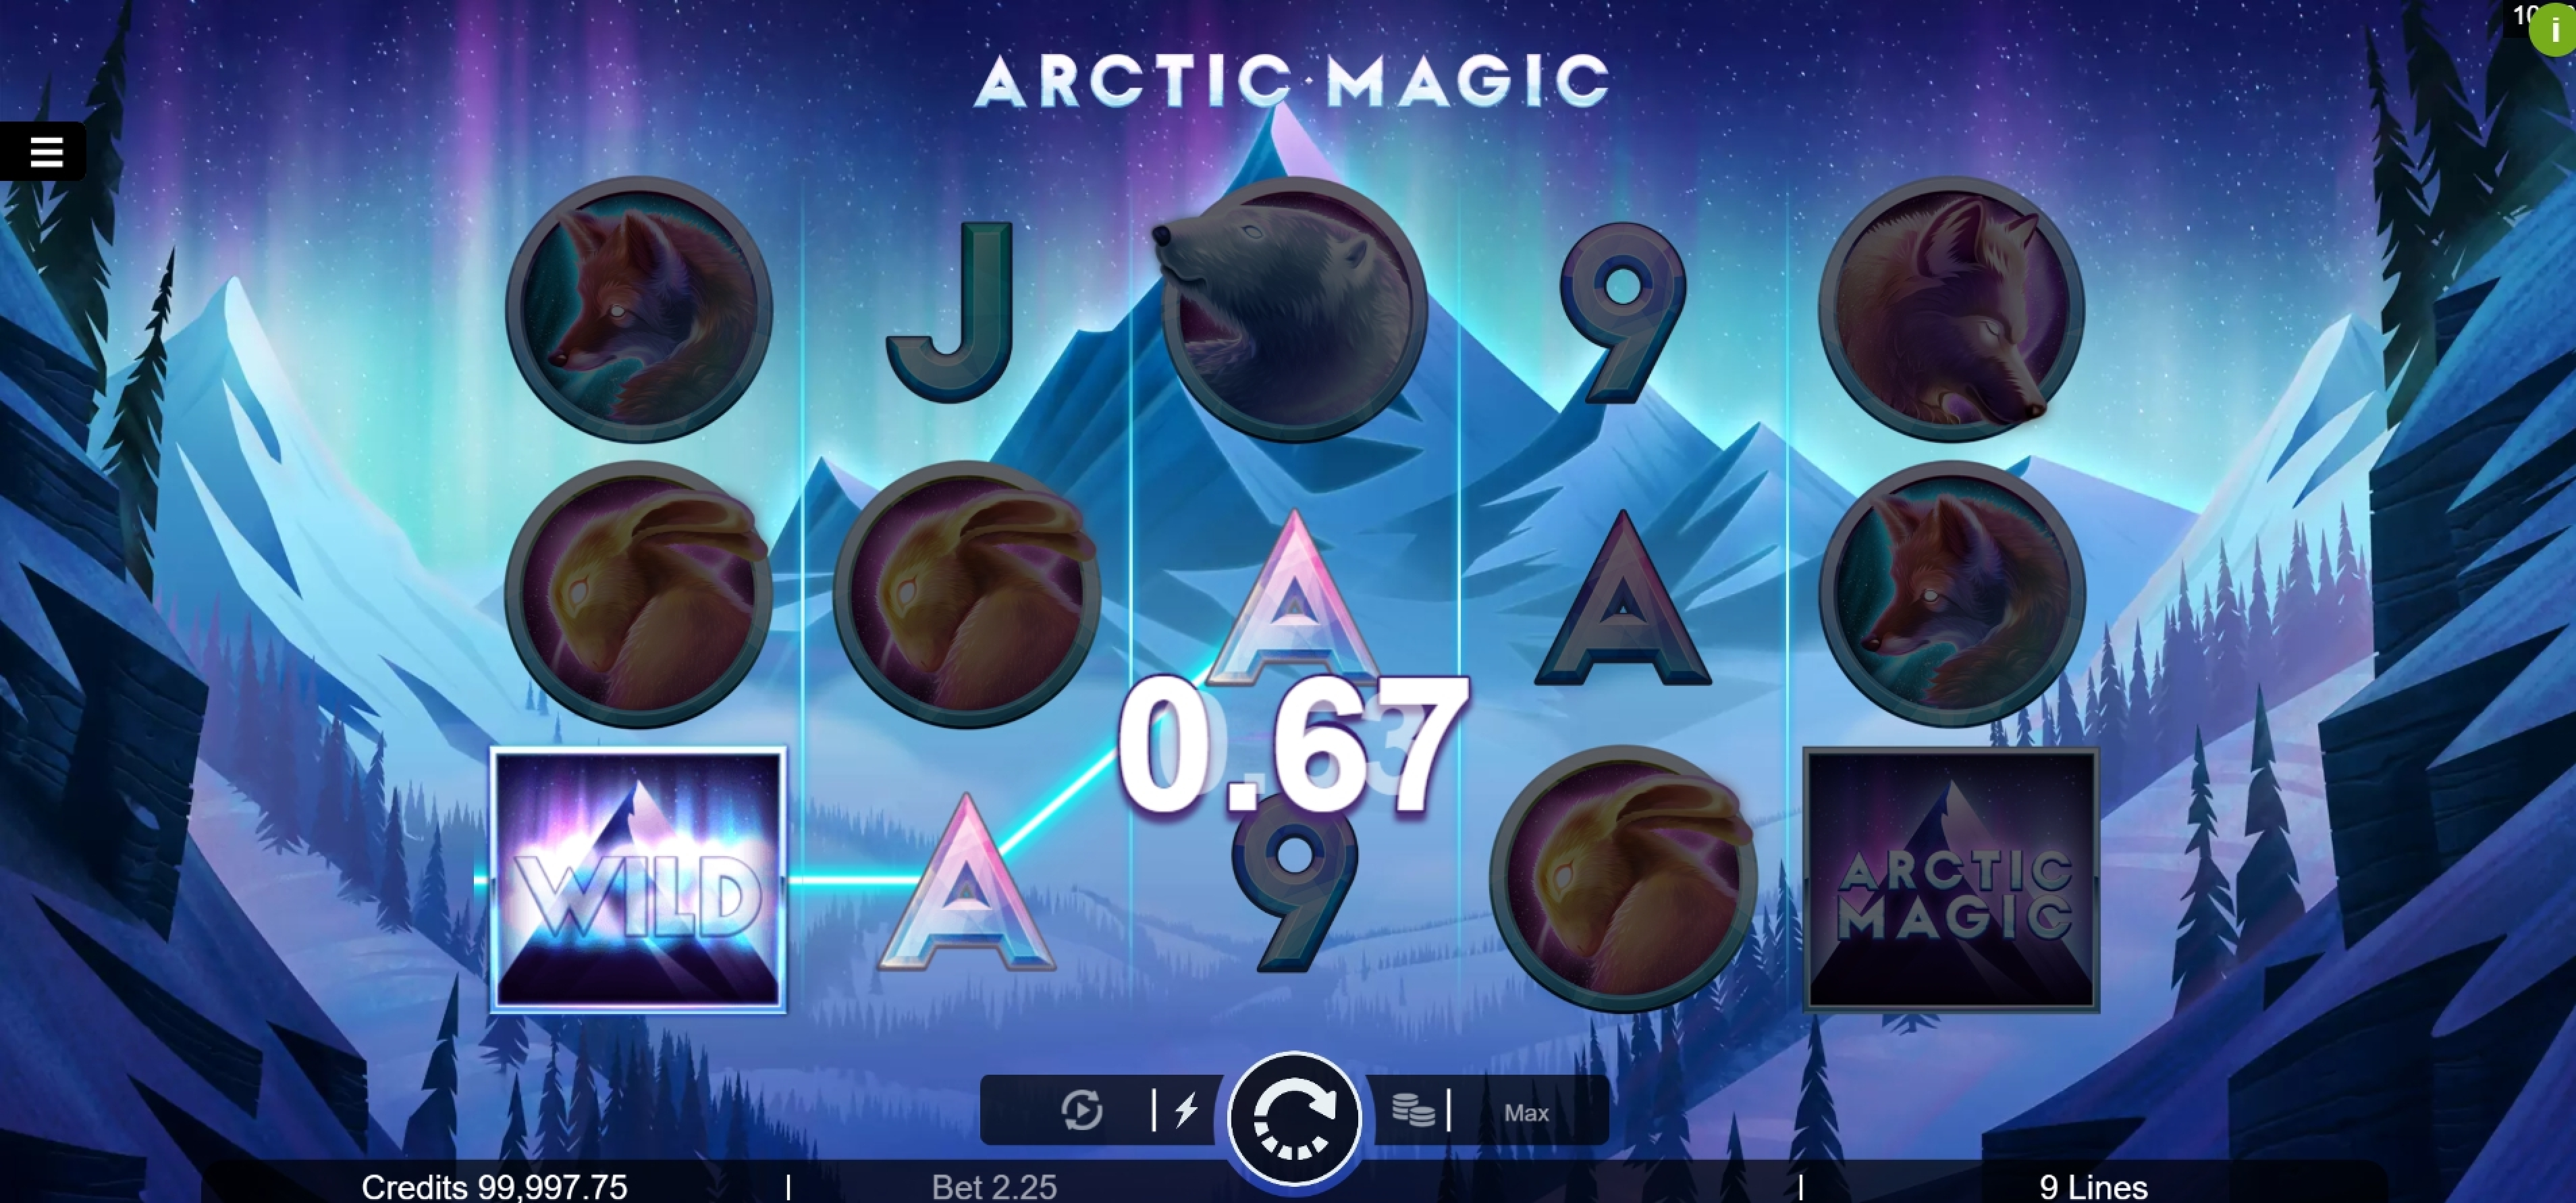 Win Money in Arctic Magic Free Slot Game by Microgaming